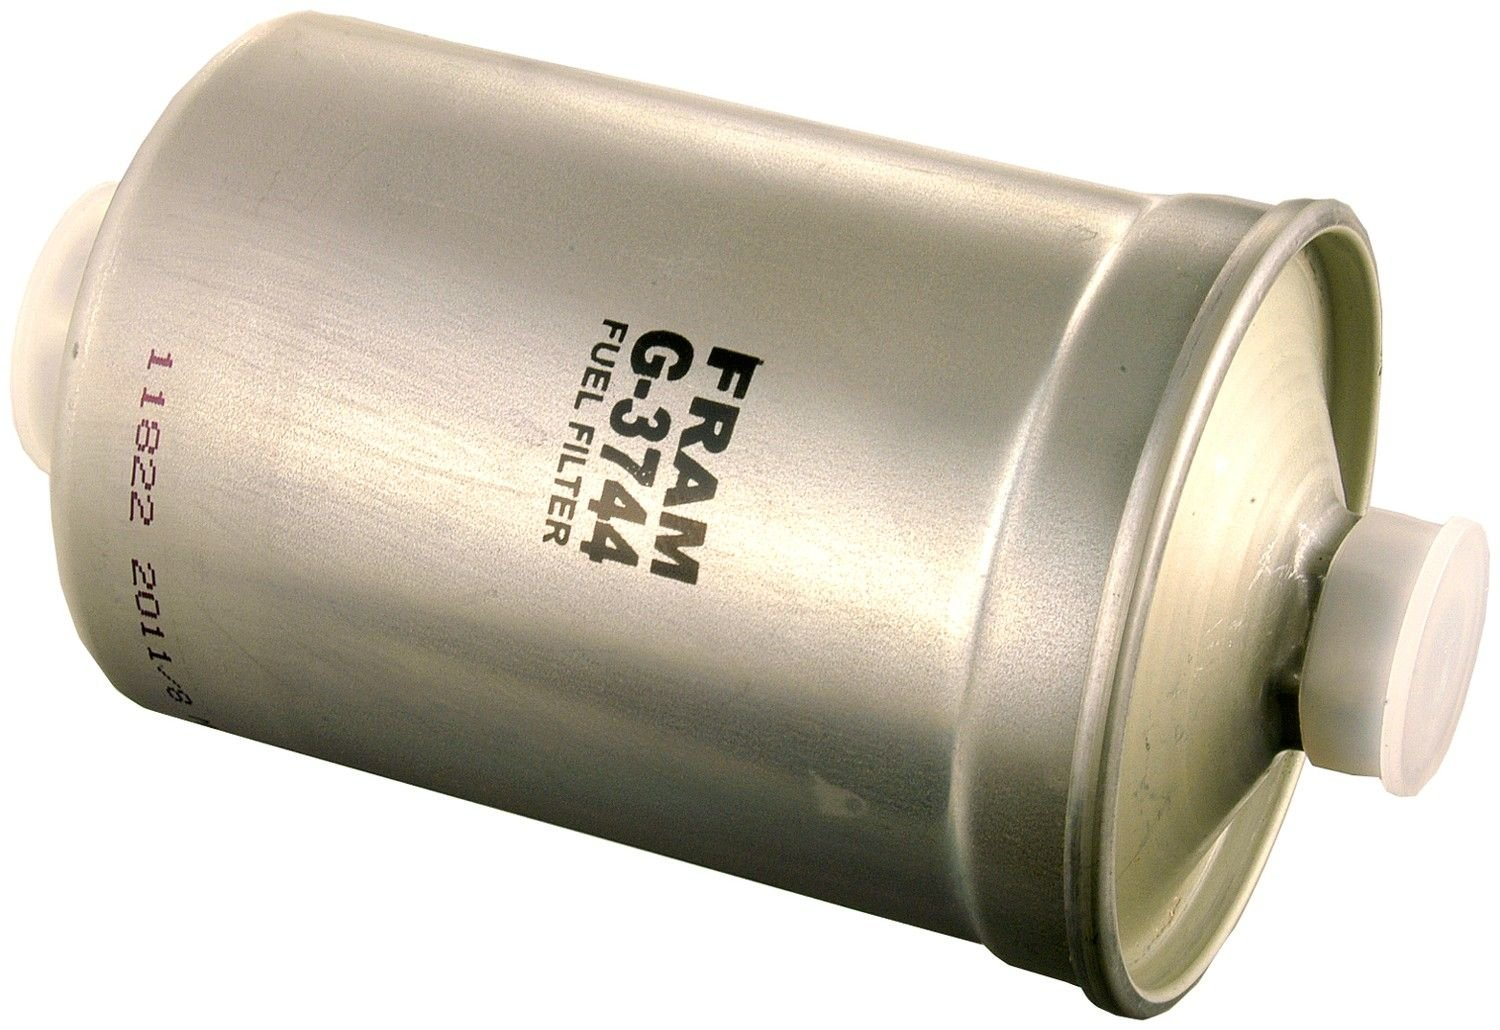 Saab 9 3 Fuel Filter Replacement Beck Arnley Fram Hastings Mahle Mann Wk 11030 In Line Unit Box Product